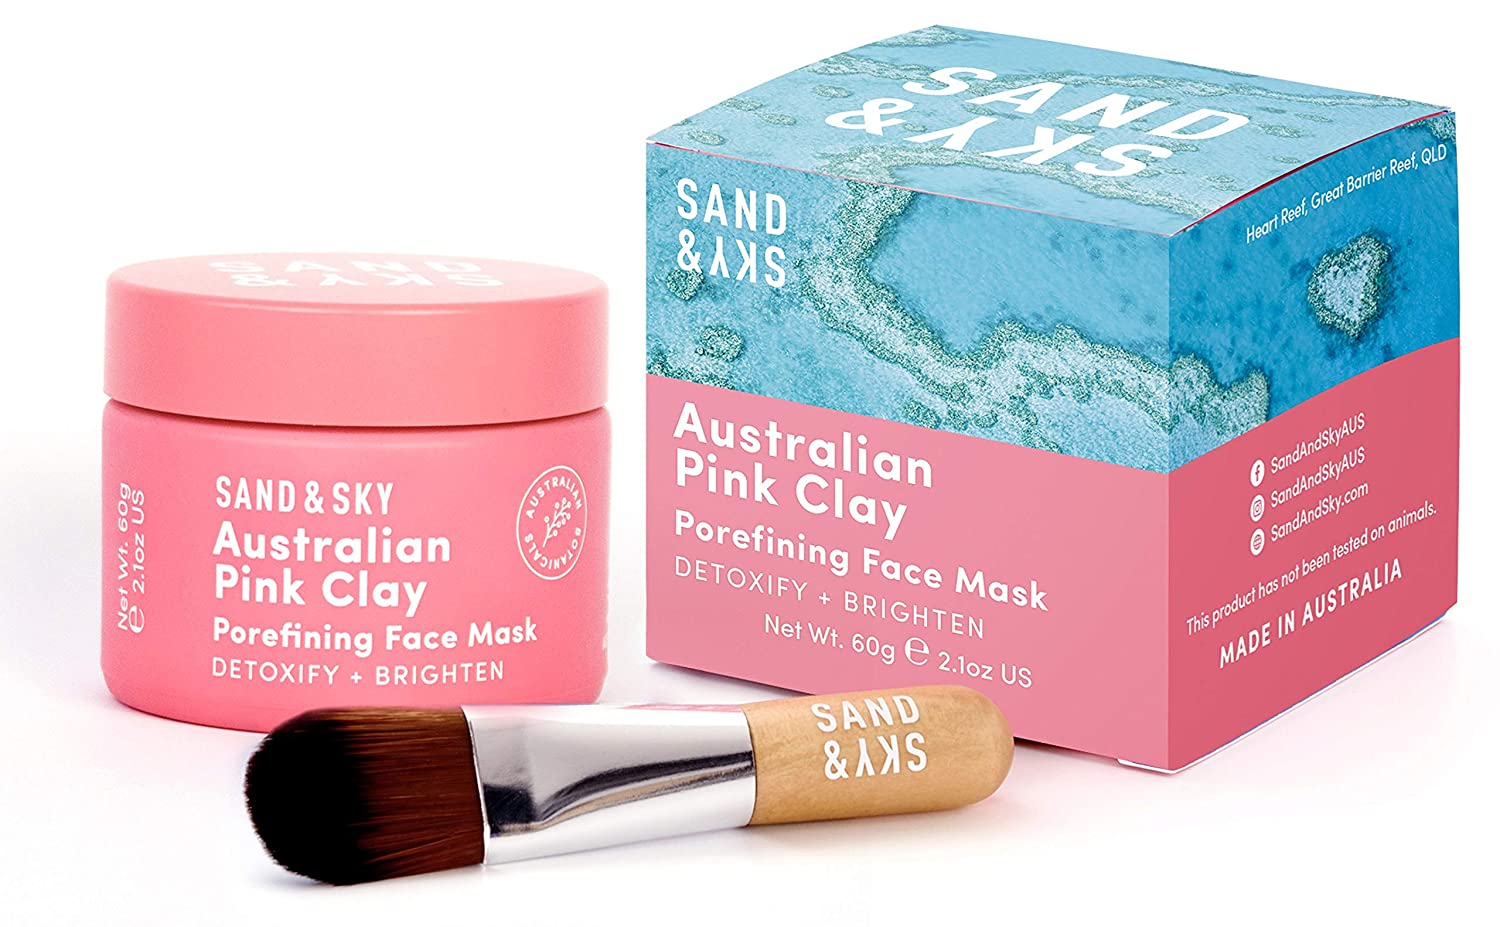 Sand & Sky Australian Pink Clay Face Mask with BONUS Face Mask Brush